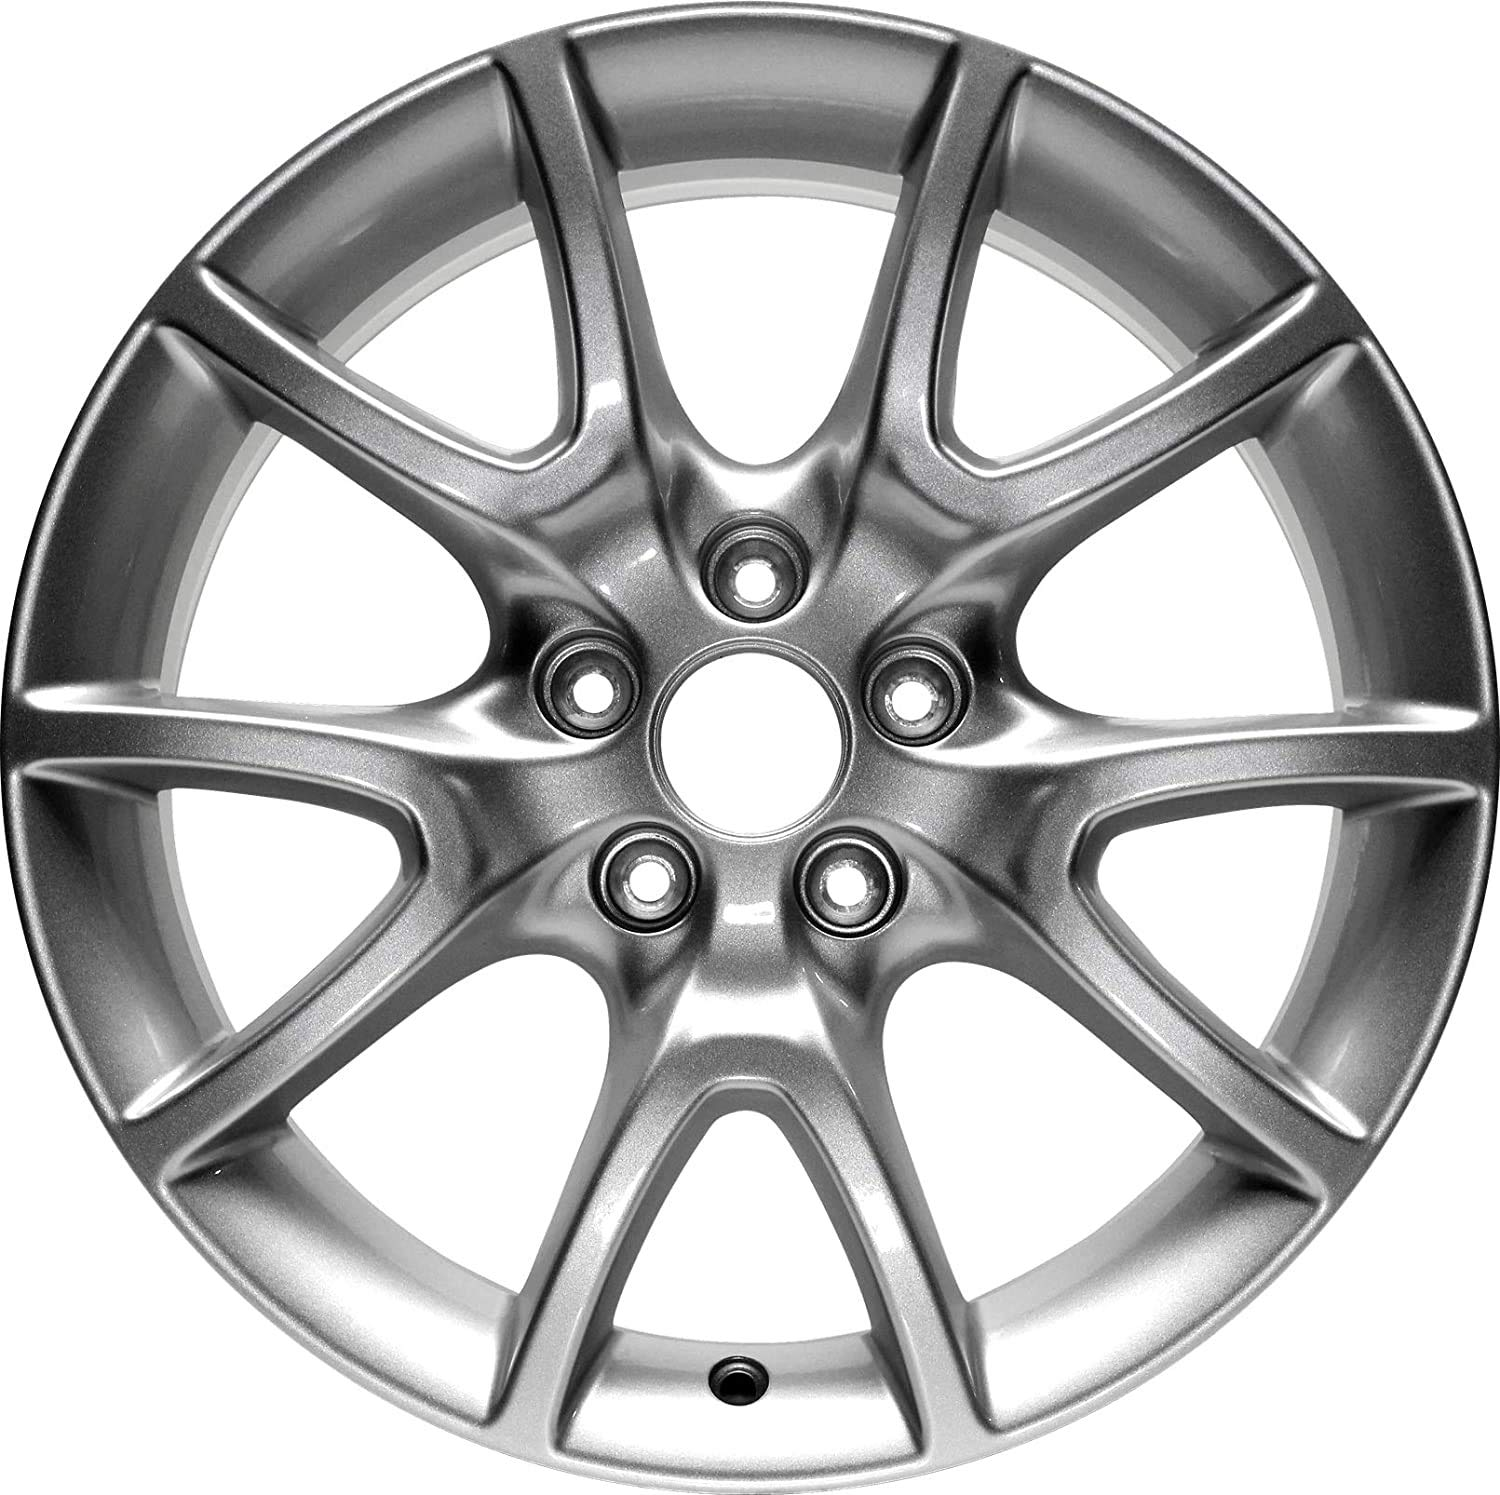 New 17 Inch X 7 5 Alloy Replacement Whee Buy Online In Bahamas At Desertcart